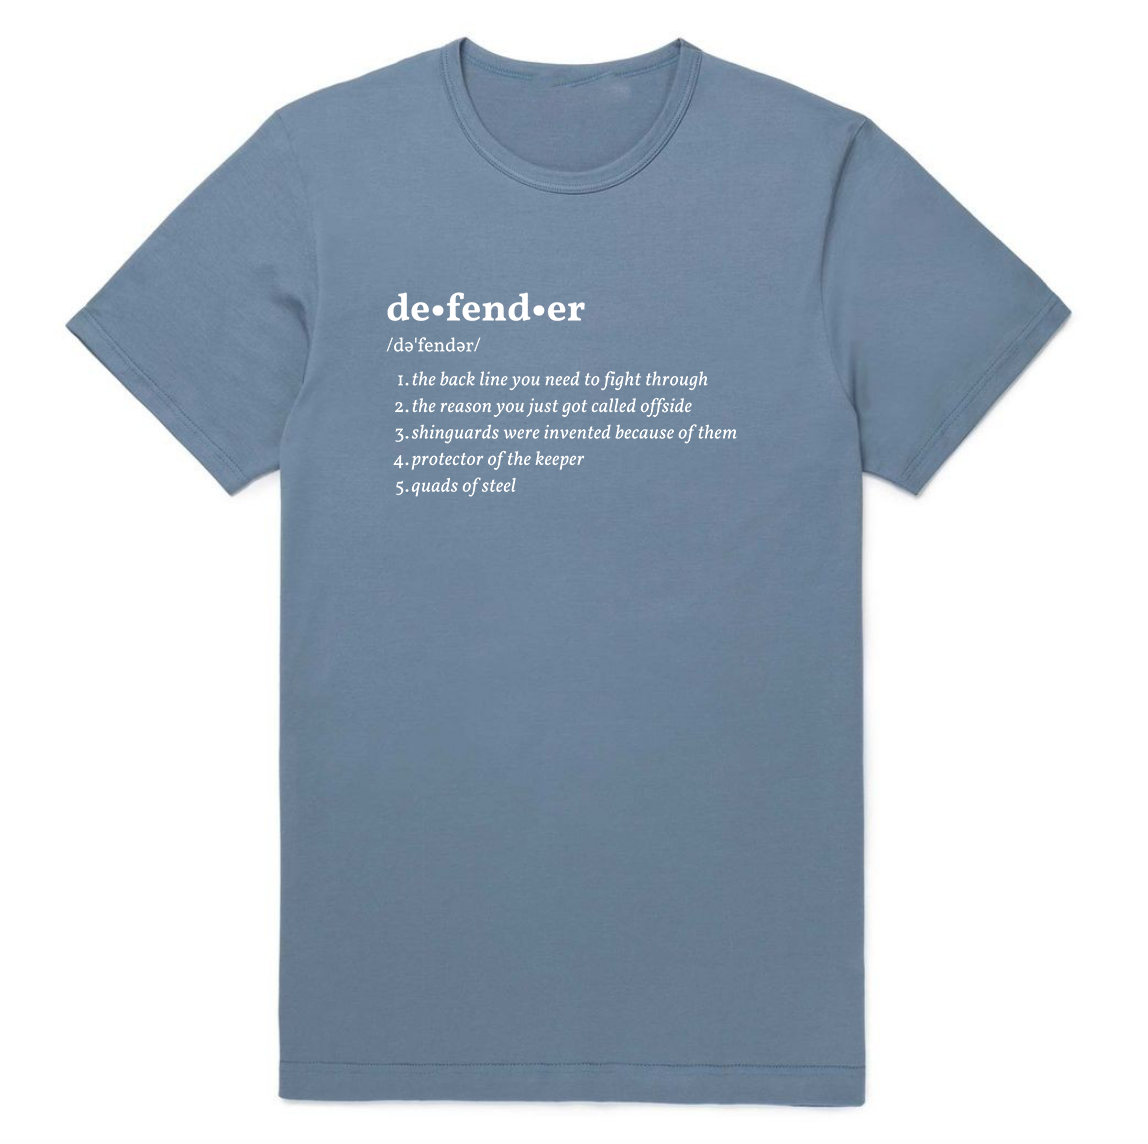 Defender Definition T-Shirt - soccergrlprobs